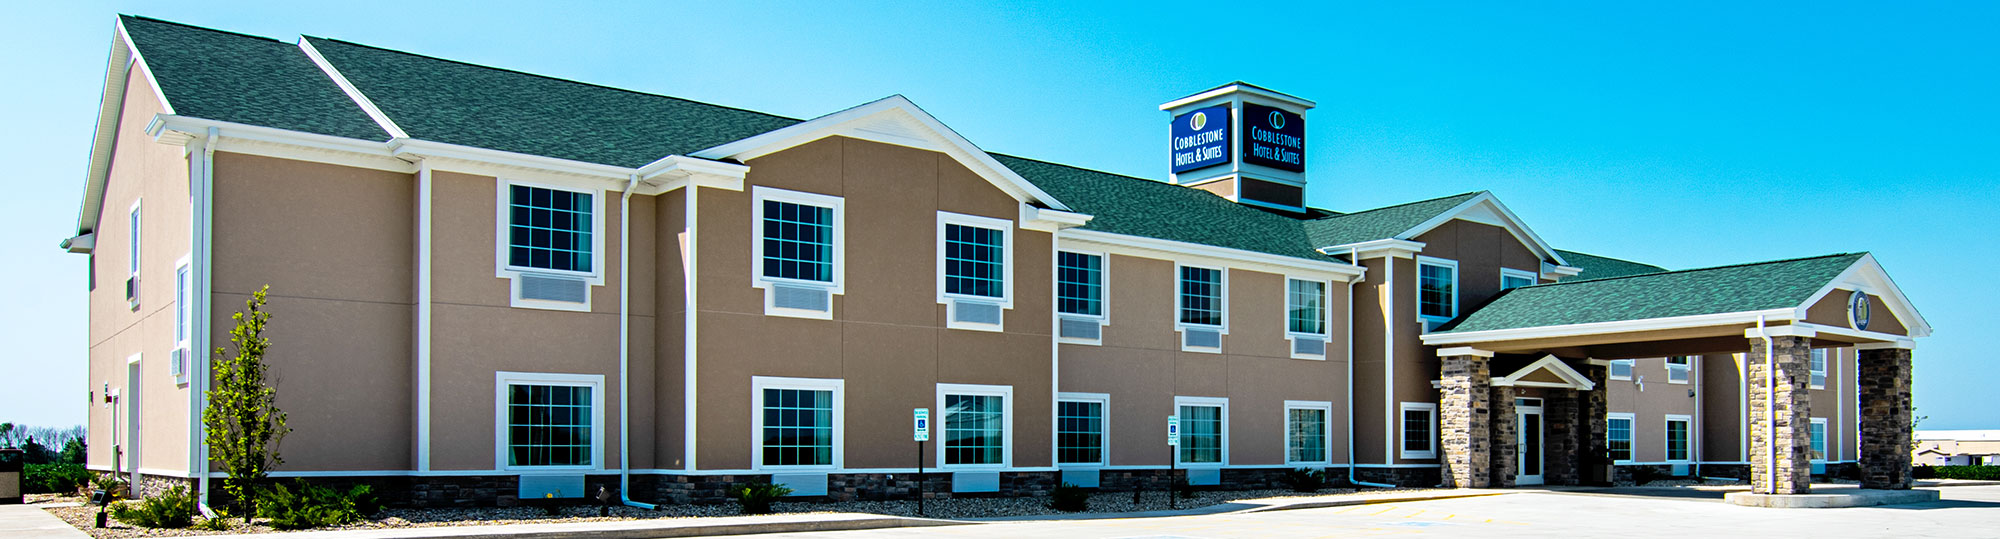 Cobblestone Inn and Suites Pine Bluffs